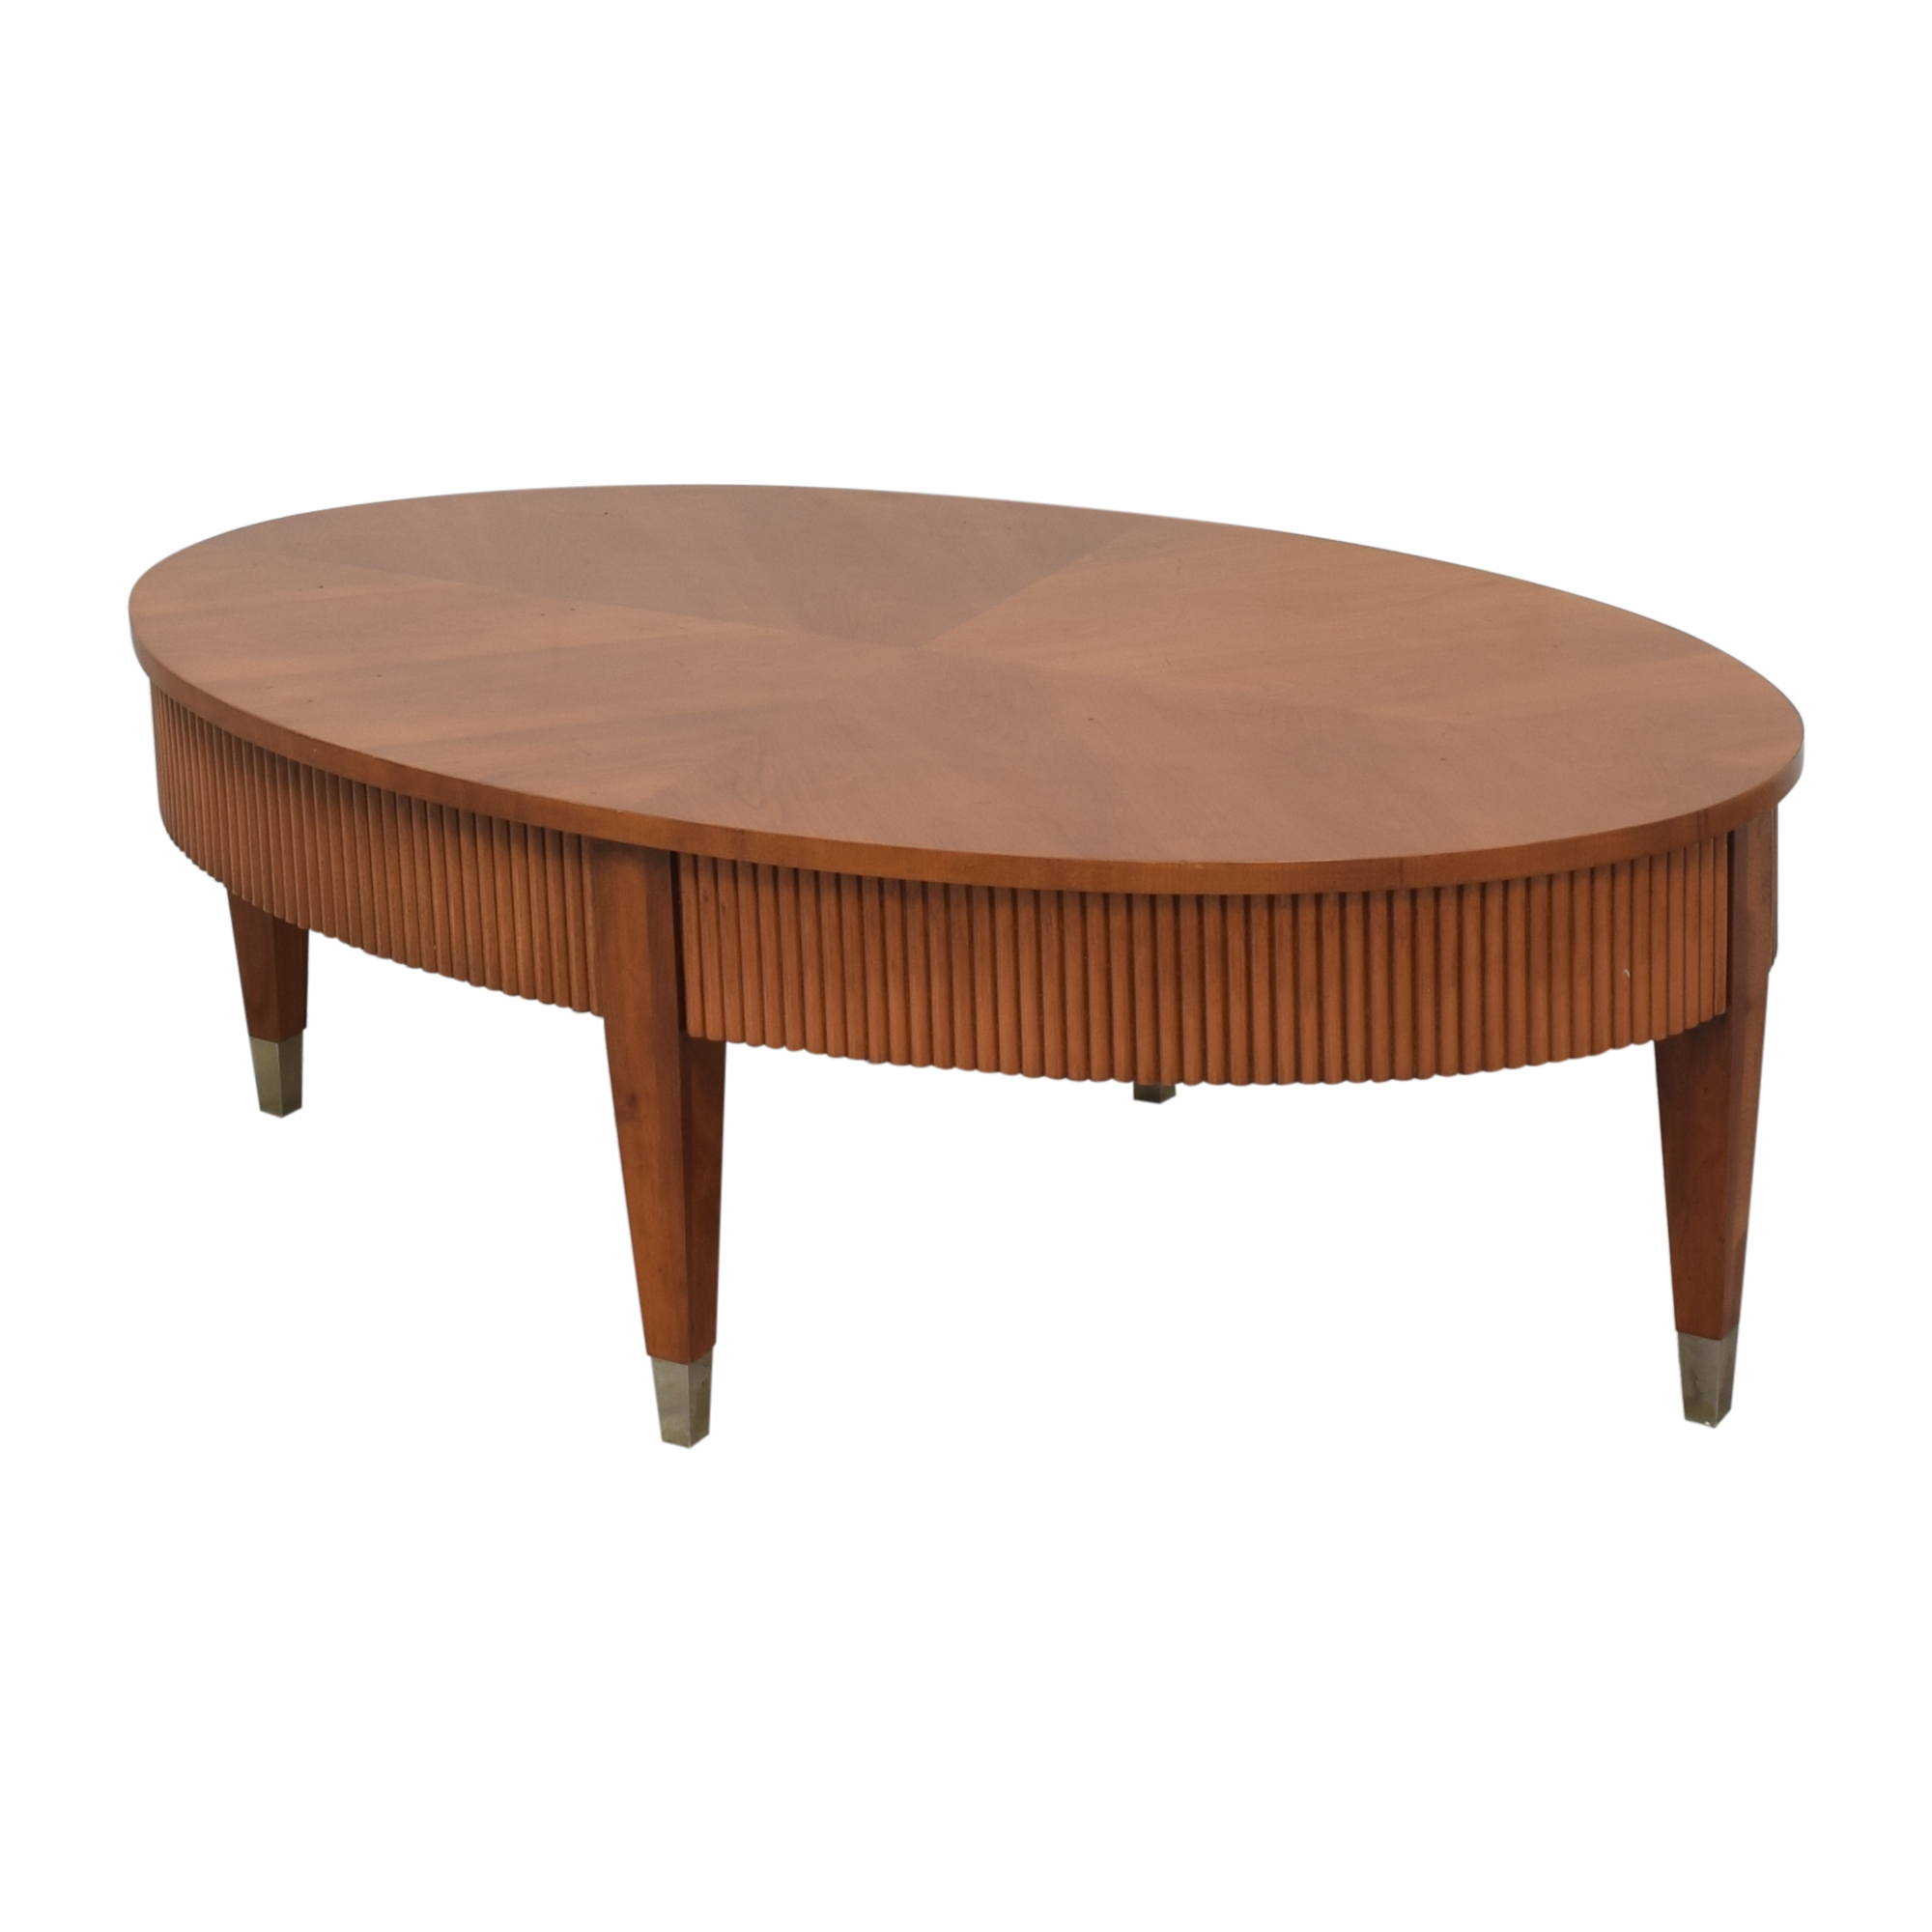 Ethan Allen Ethan Allen Avenue Oval Coffee Table for sale